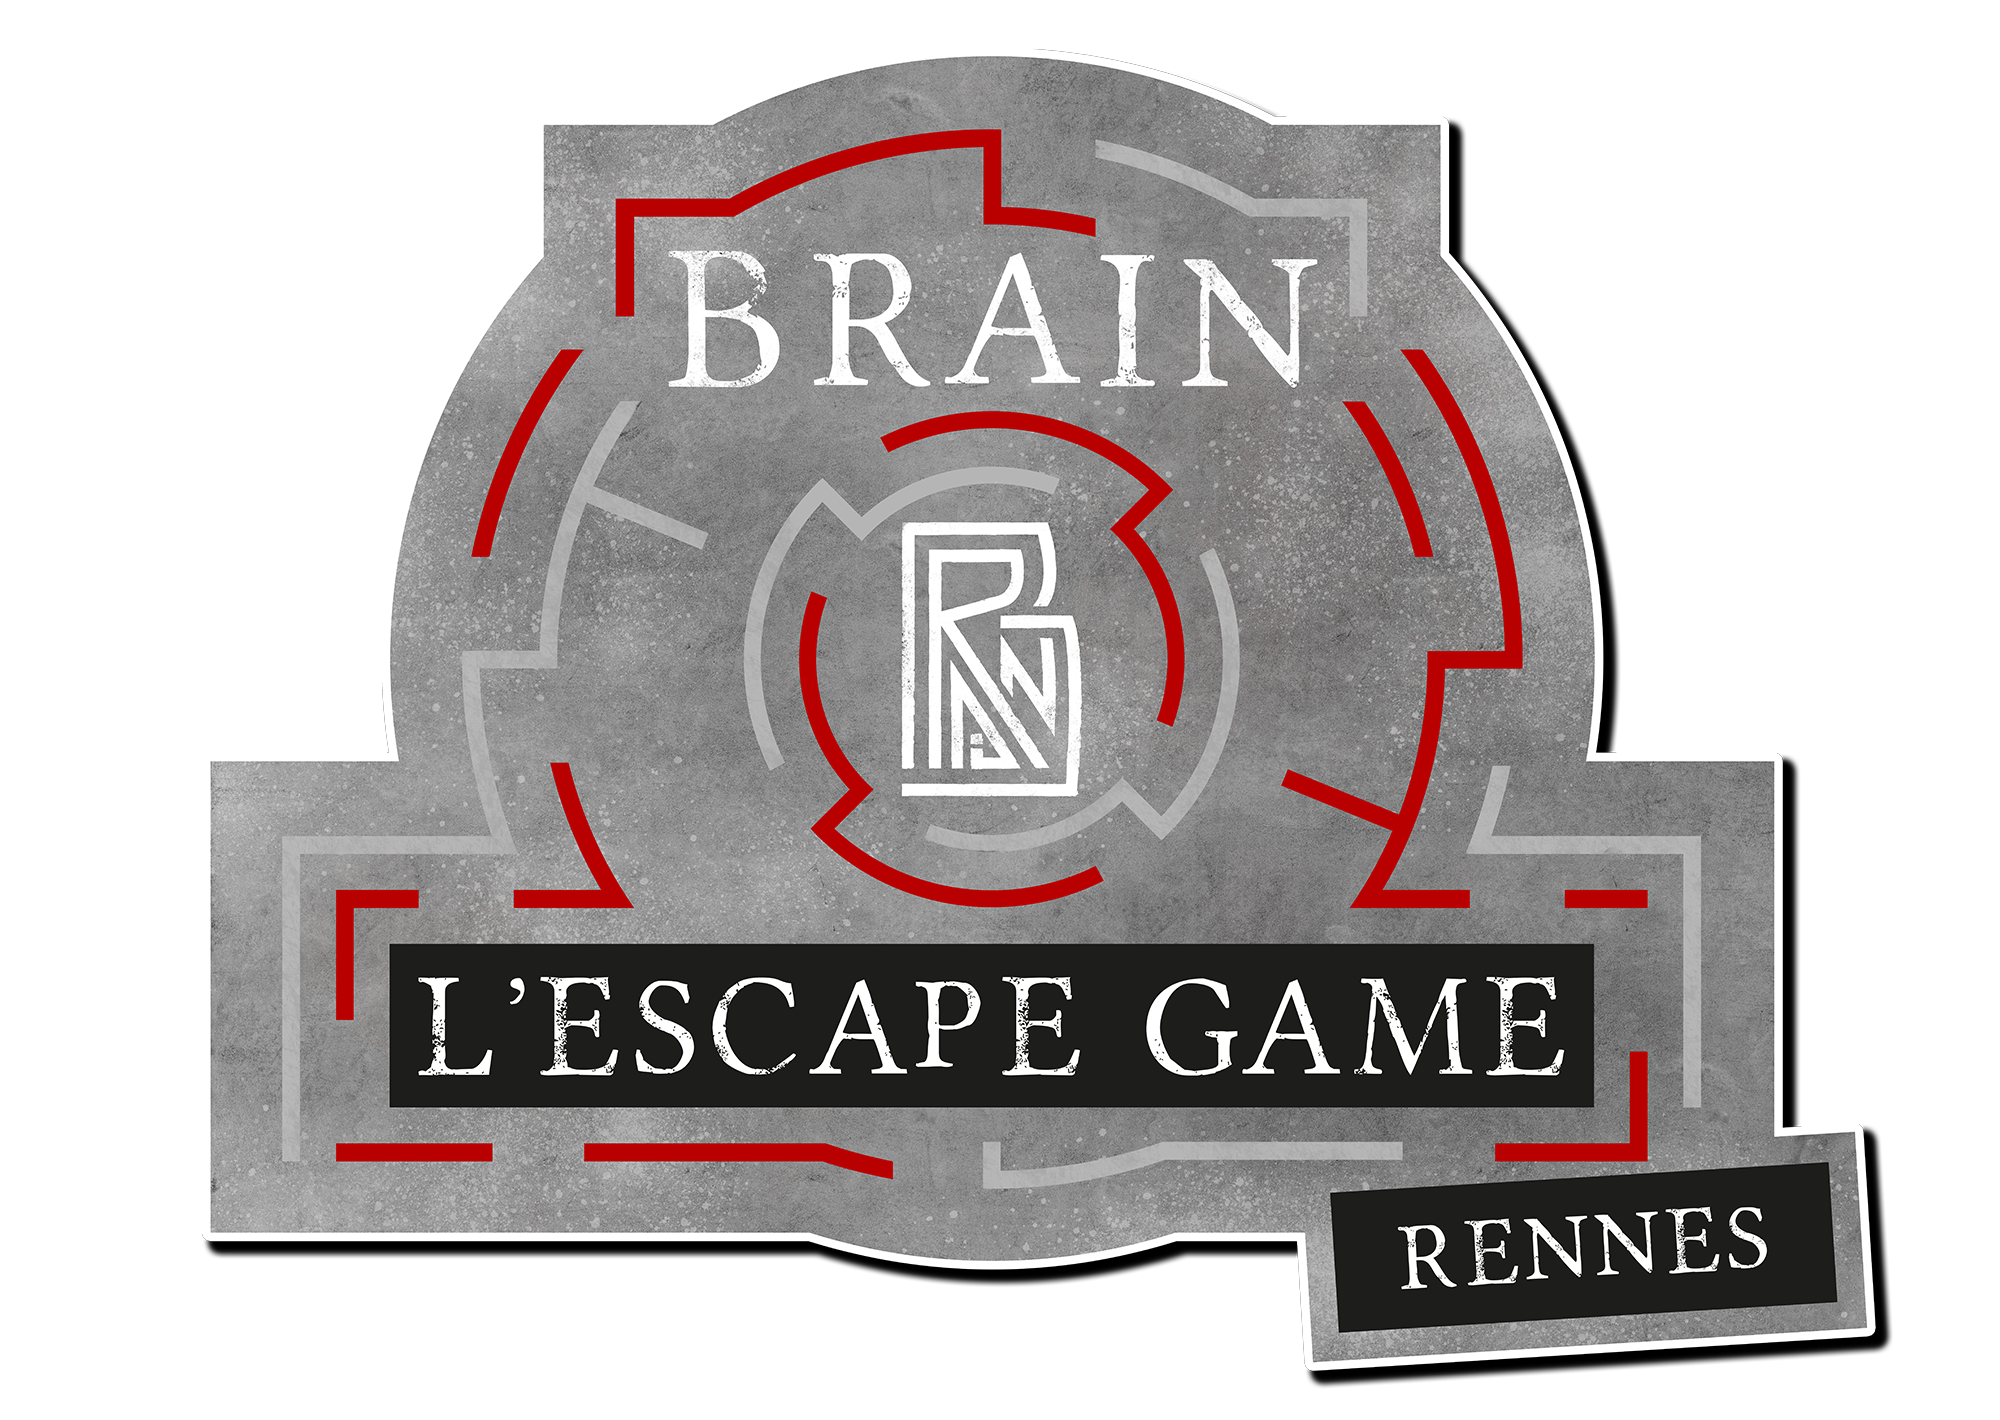 Brain L'Escape Game Rennes